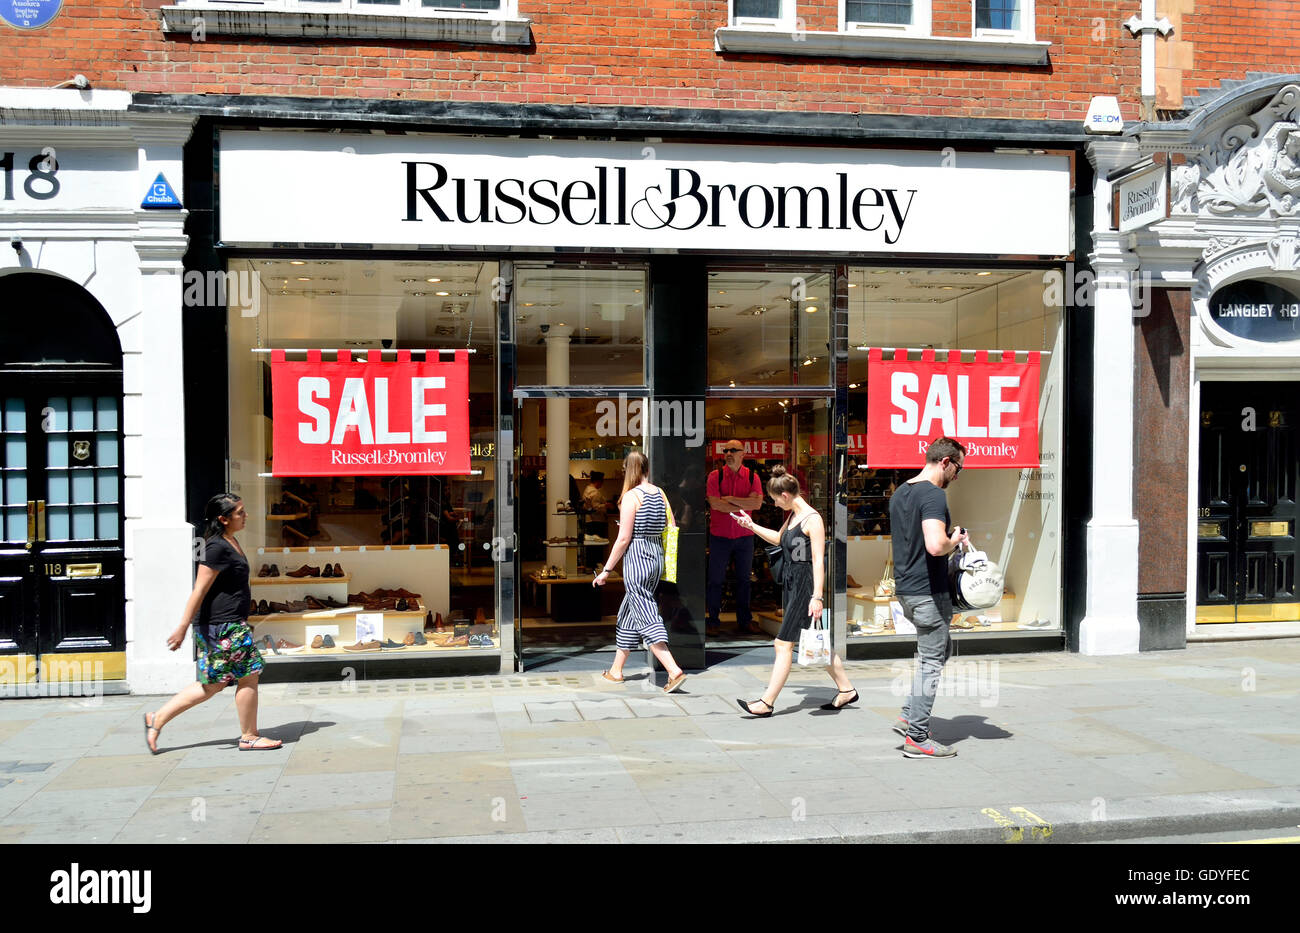 London, England, UK. Russell & Bromley (women's clothing) sale - Stock Image